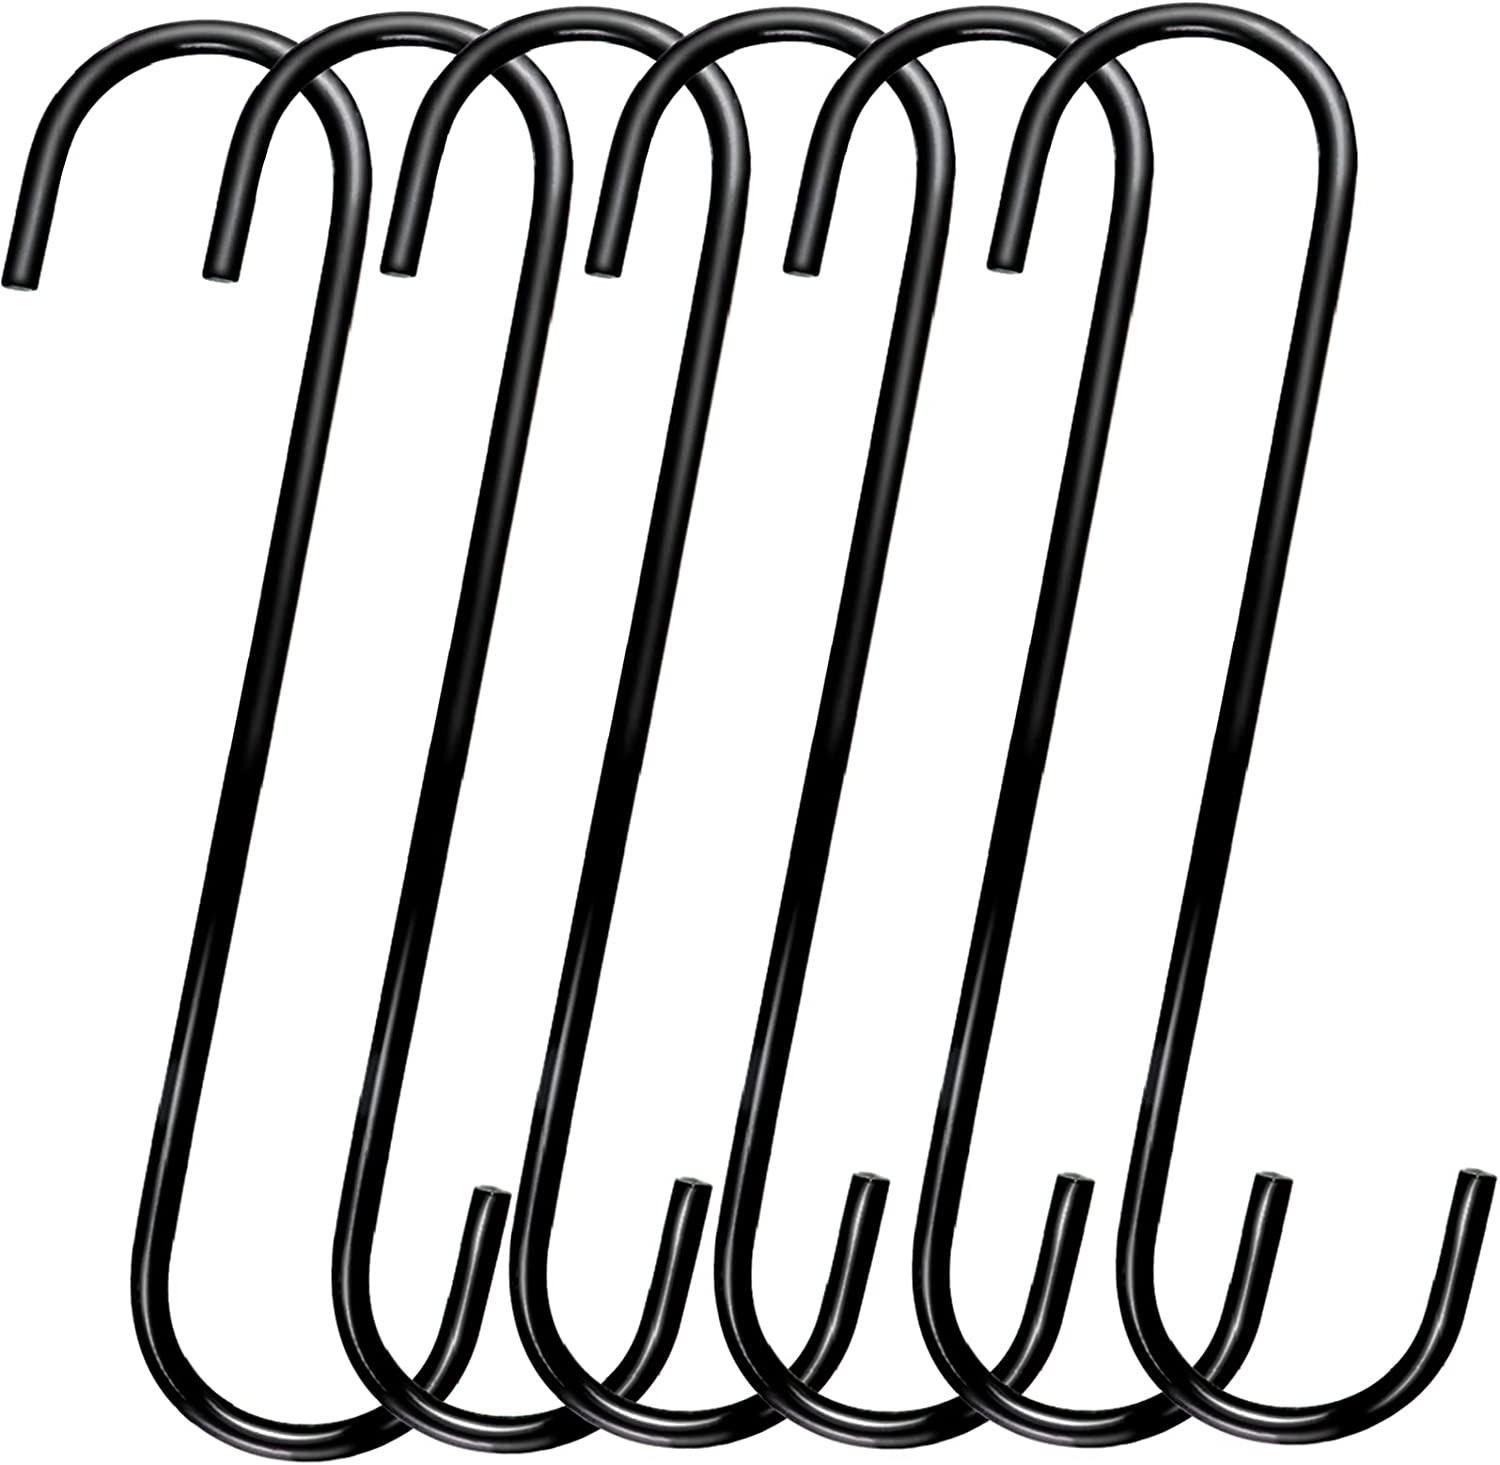 DINGEE 8 Inch S Hooks Heavy Duty Metal Online limited product 6 Pack Large Shap Directly managed store Extra